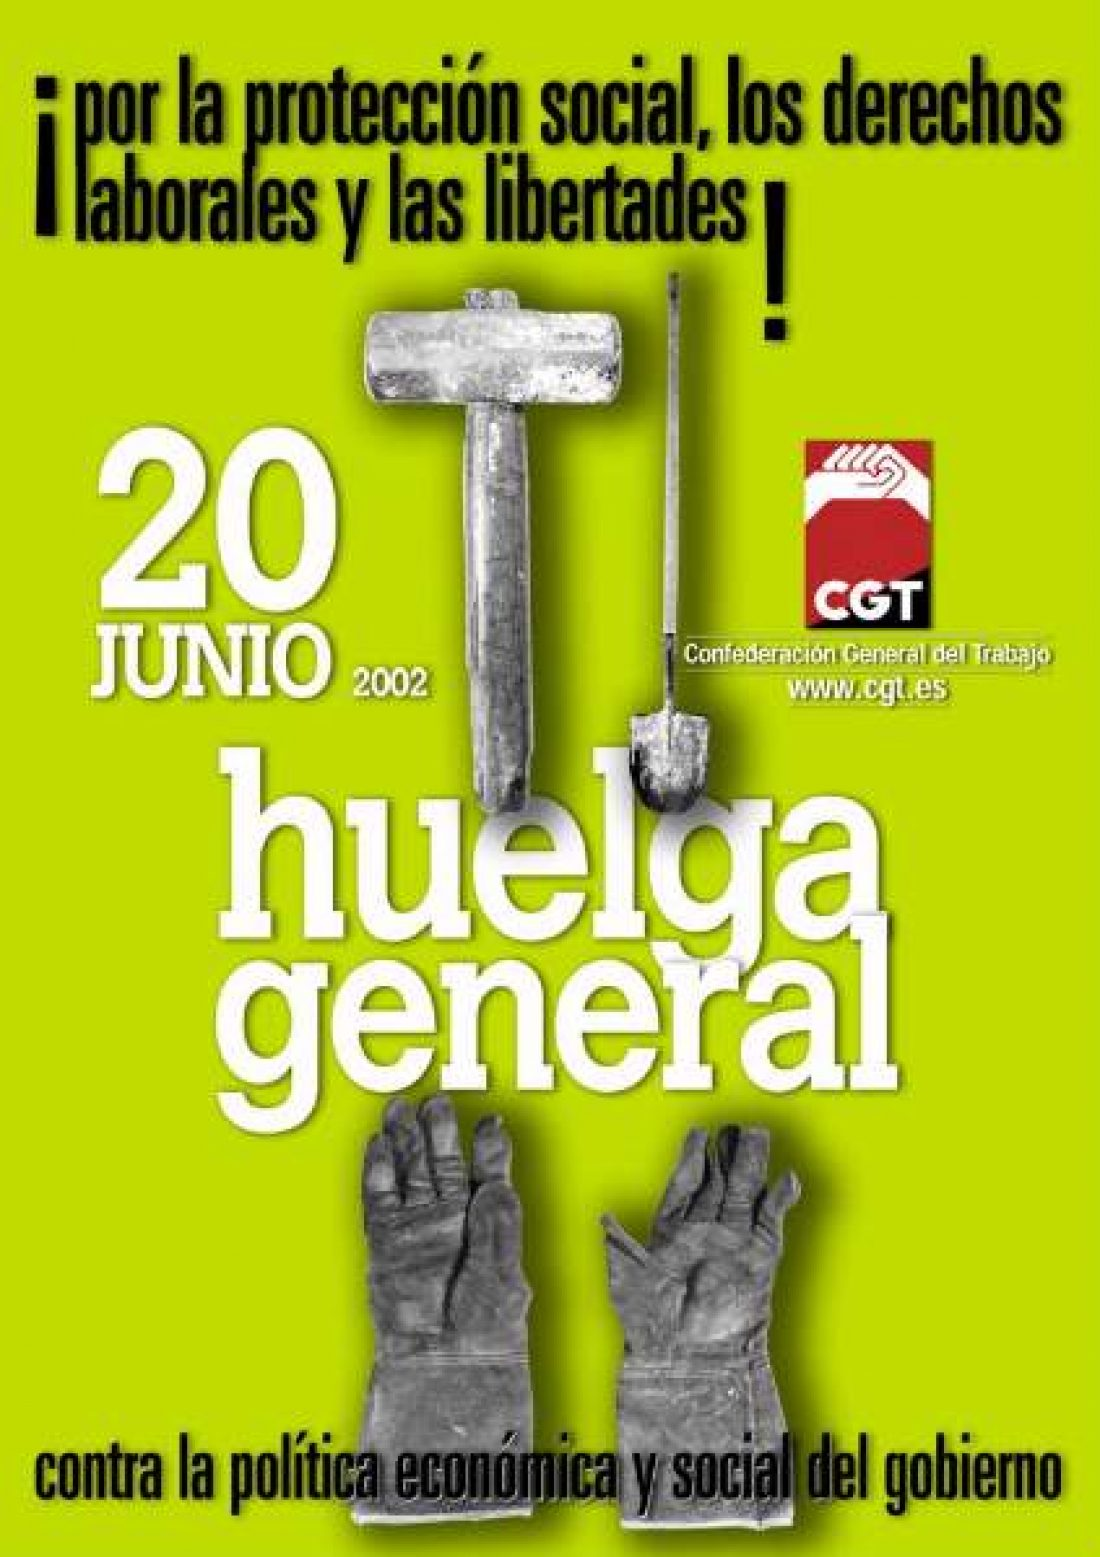 Cartel Huelga General 20J 2002 CGT